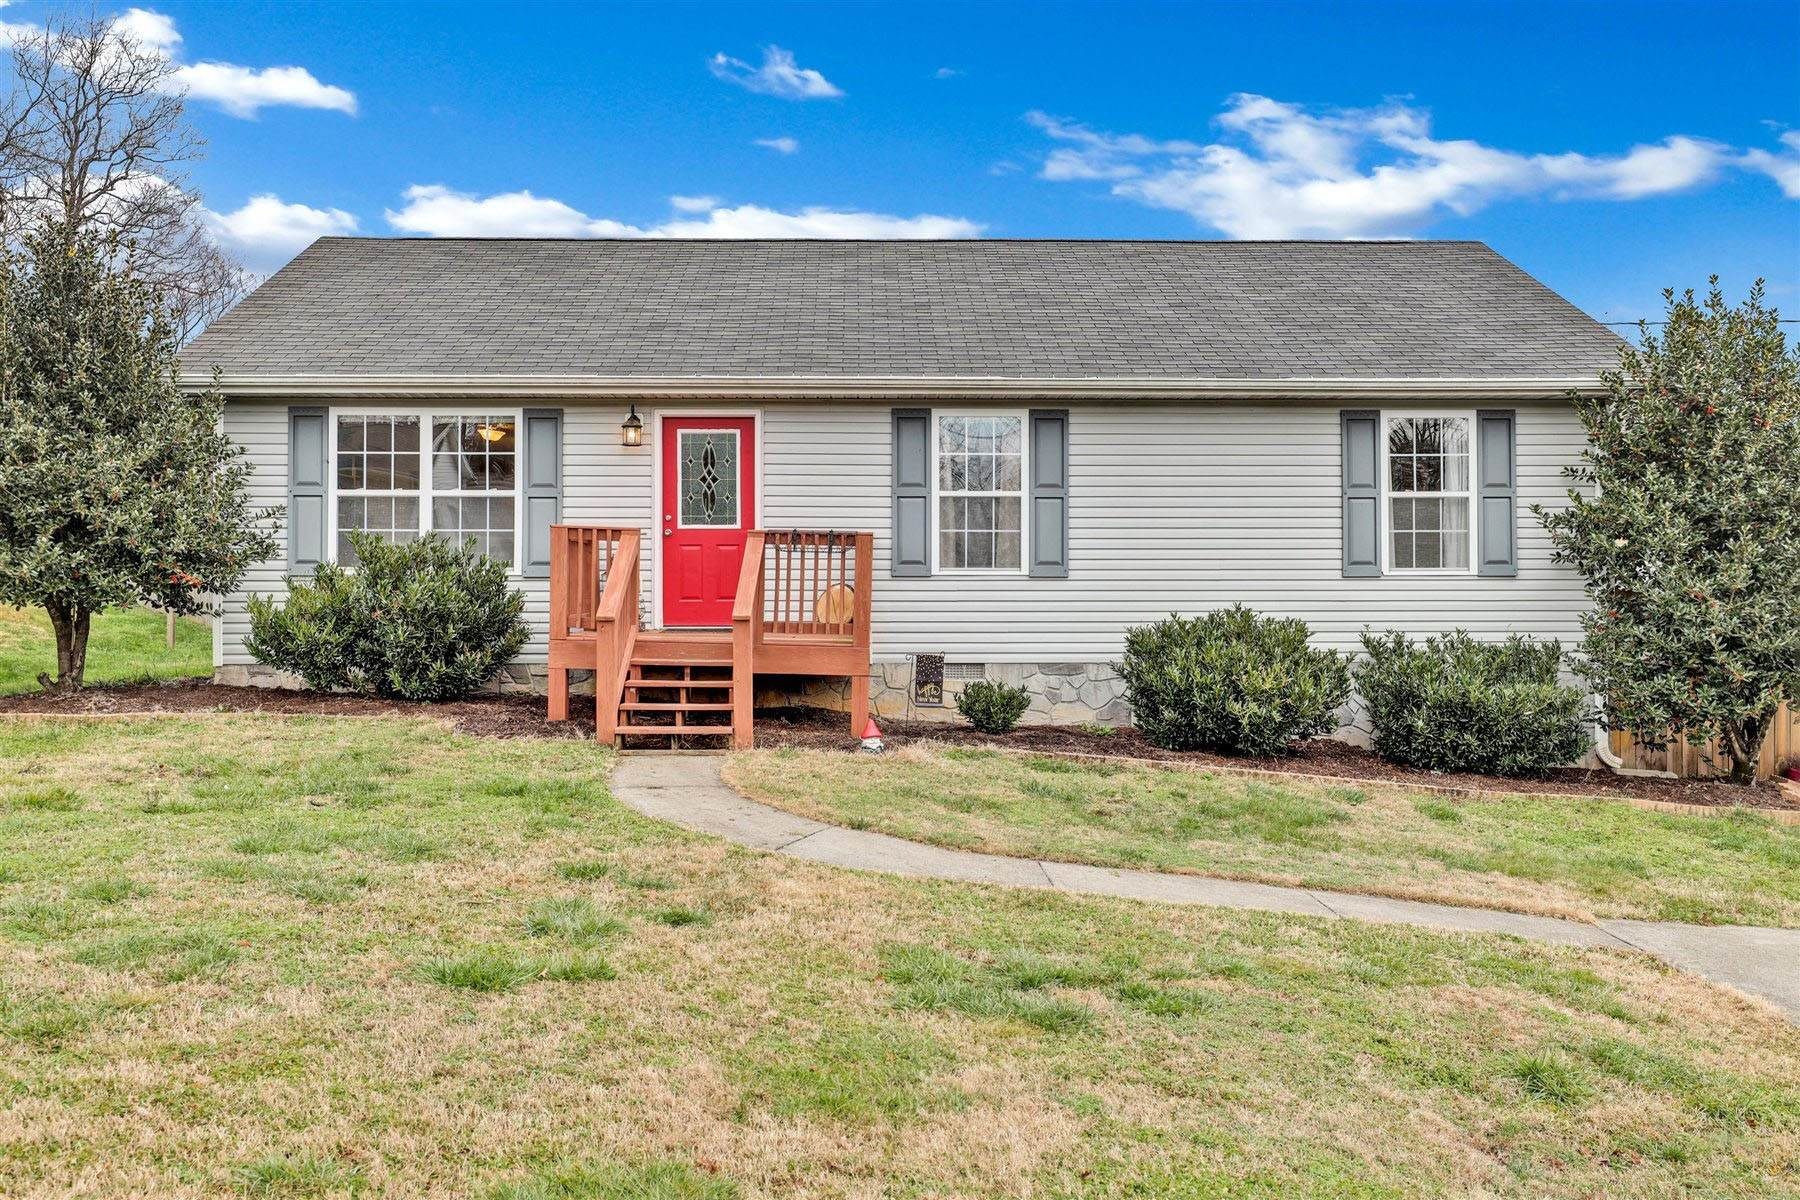 Single Family Homes for Sale at Adorable Cottage Style Home 2118 Flagler Road Knoxville, Tennessee 37912 United States